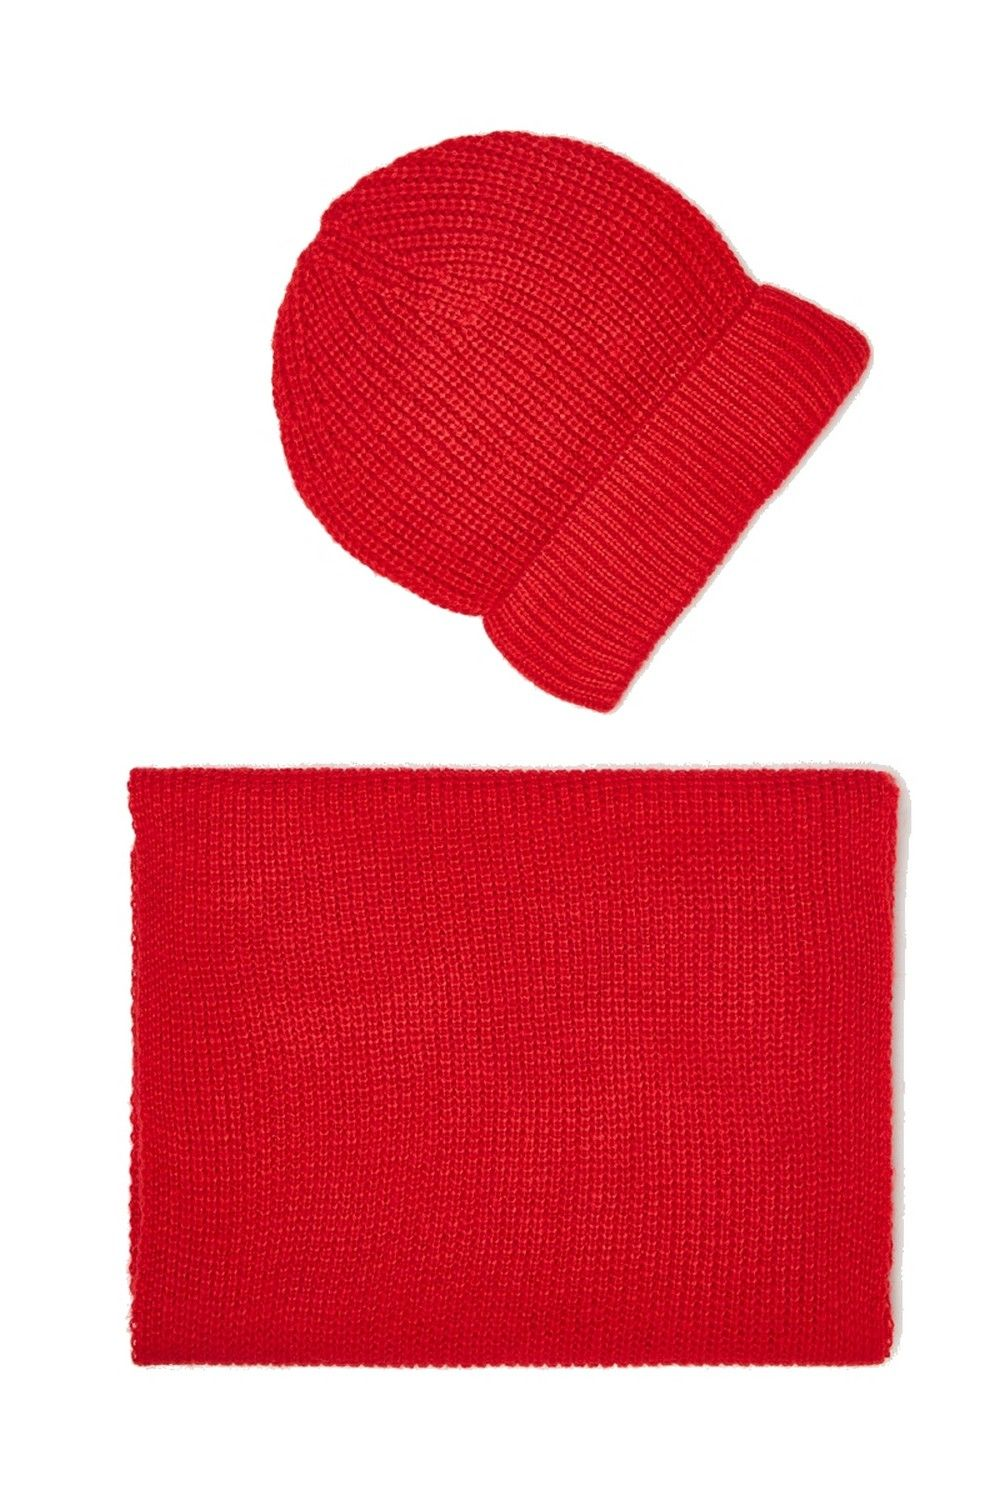 William De Faye 4 Yarn 200x30cm Scarf & Beanie in Red